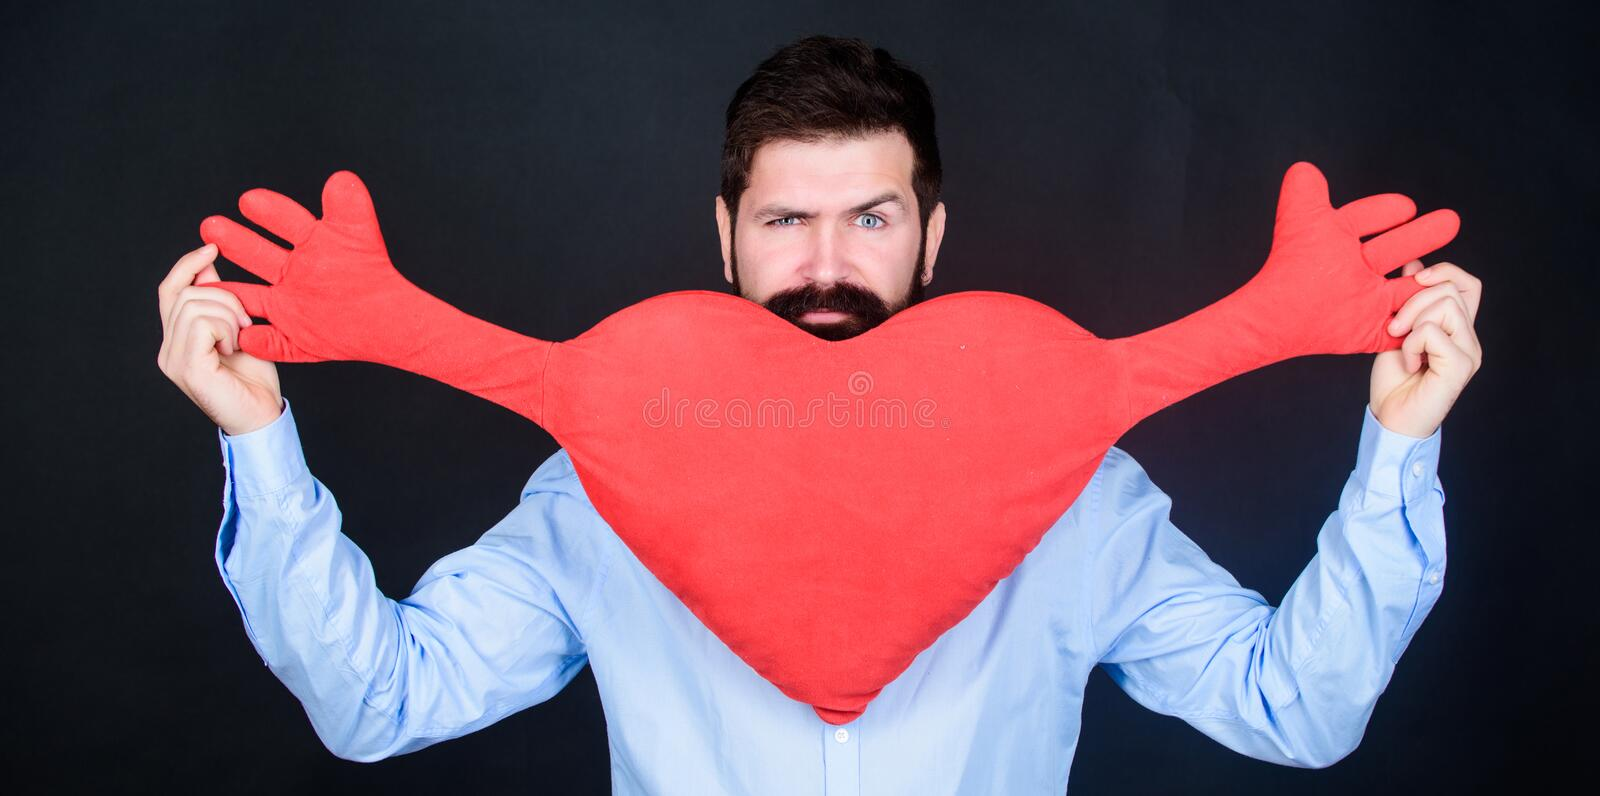 Being utterly romantically lovestruck. Having heart attack and heartache. Unhealthy man holding big red heart. Valentines man expressing love on 14 february royalty free stock photos